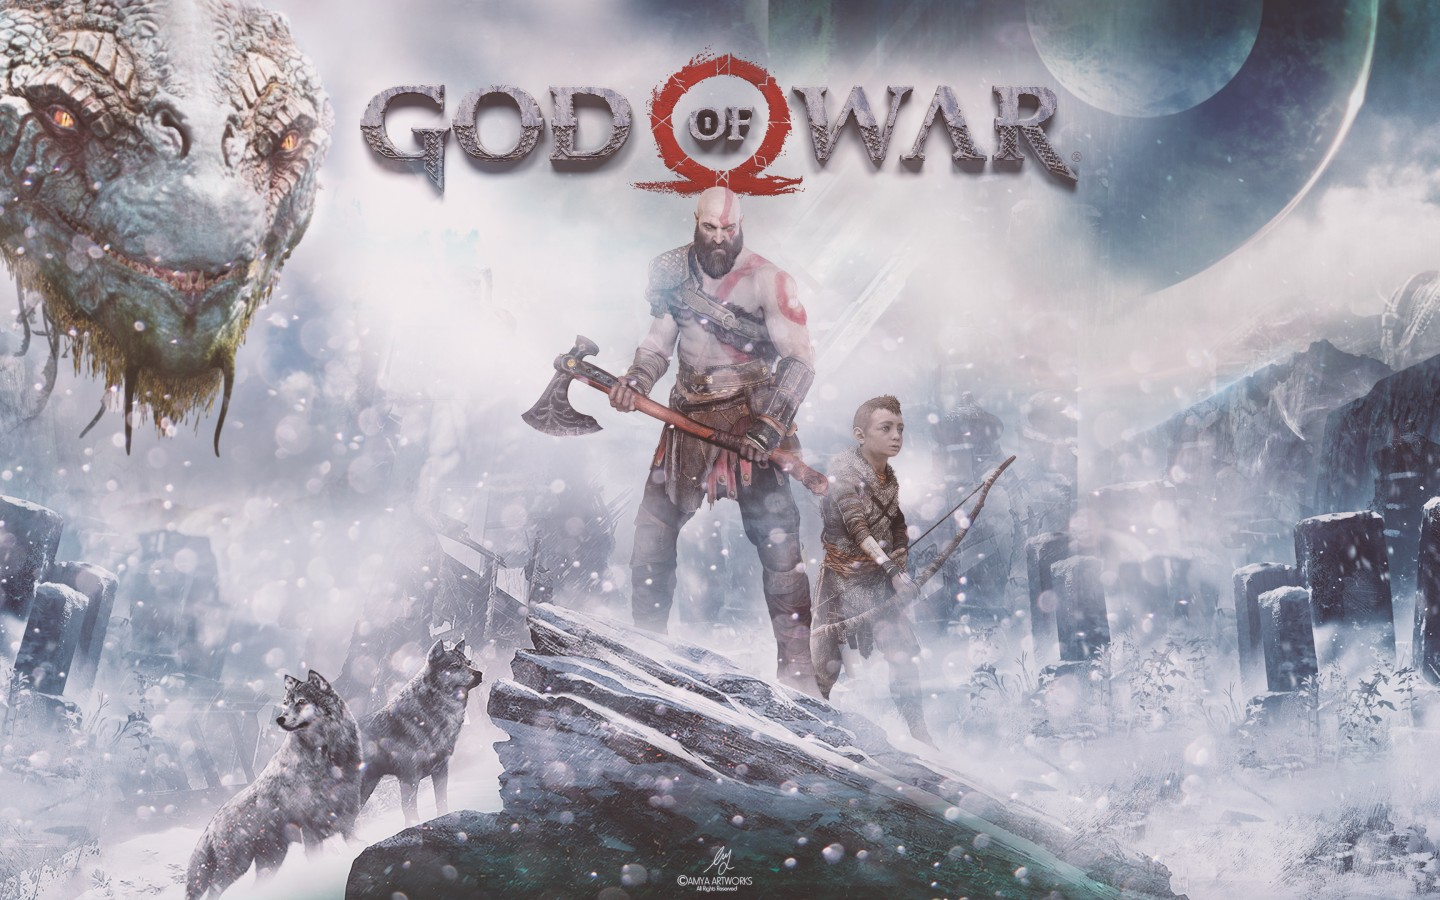 god of war ps4 4k hd wallpaper 1440x900 - hd wallpaper - wallpapers